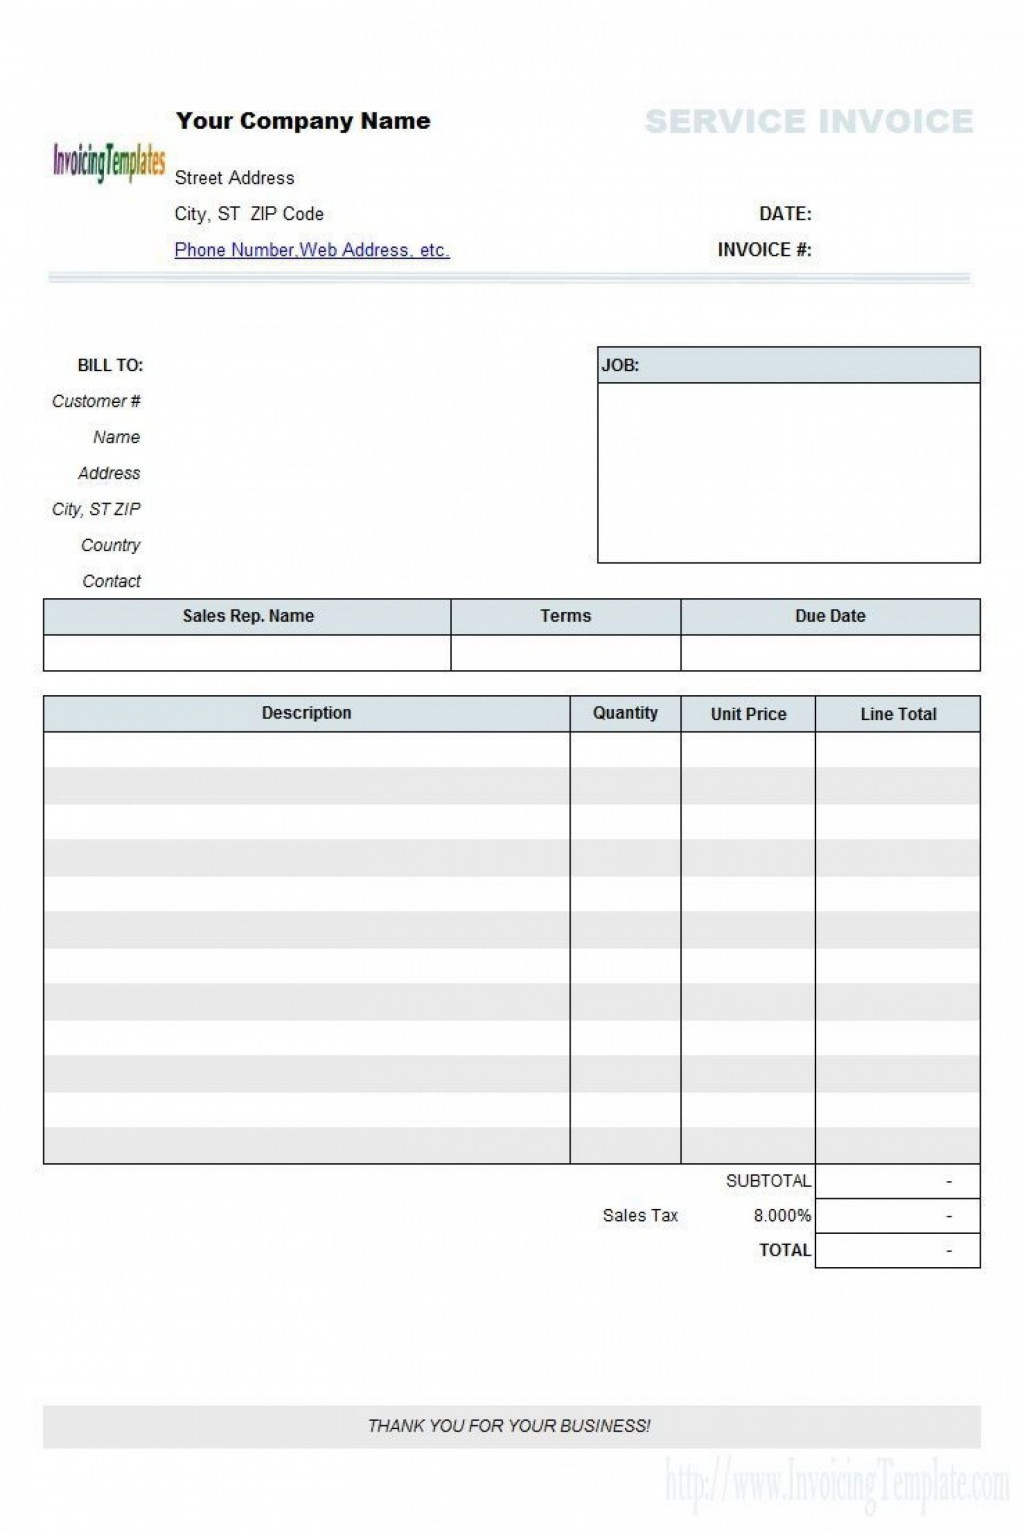 007 Marvelou Free Tax Invoice Template Excel South Africa Photo Large